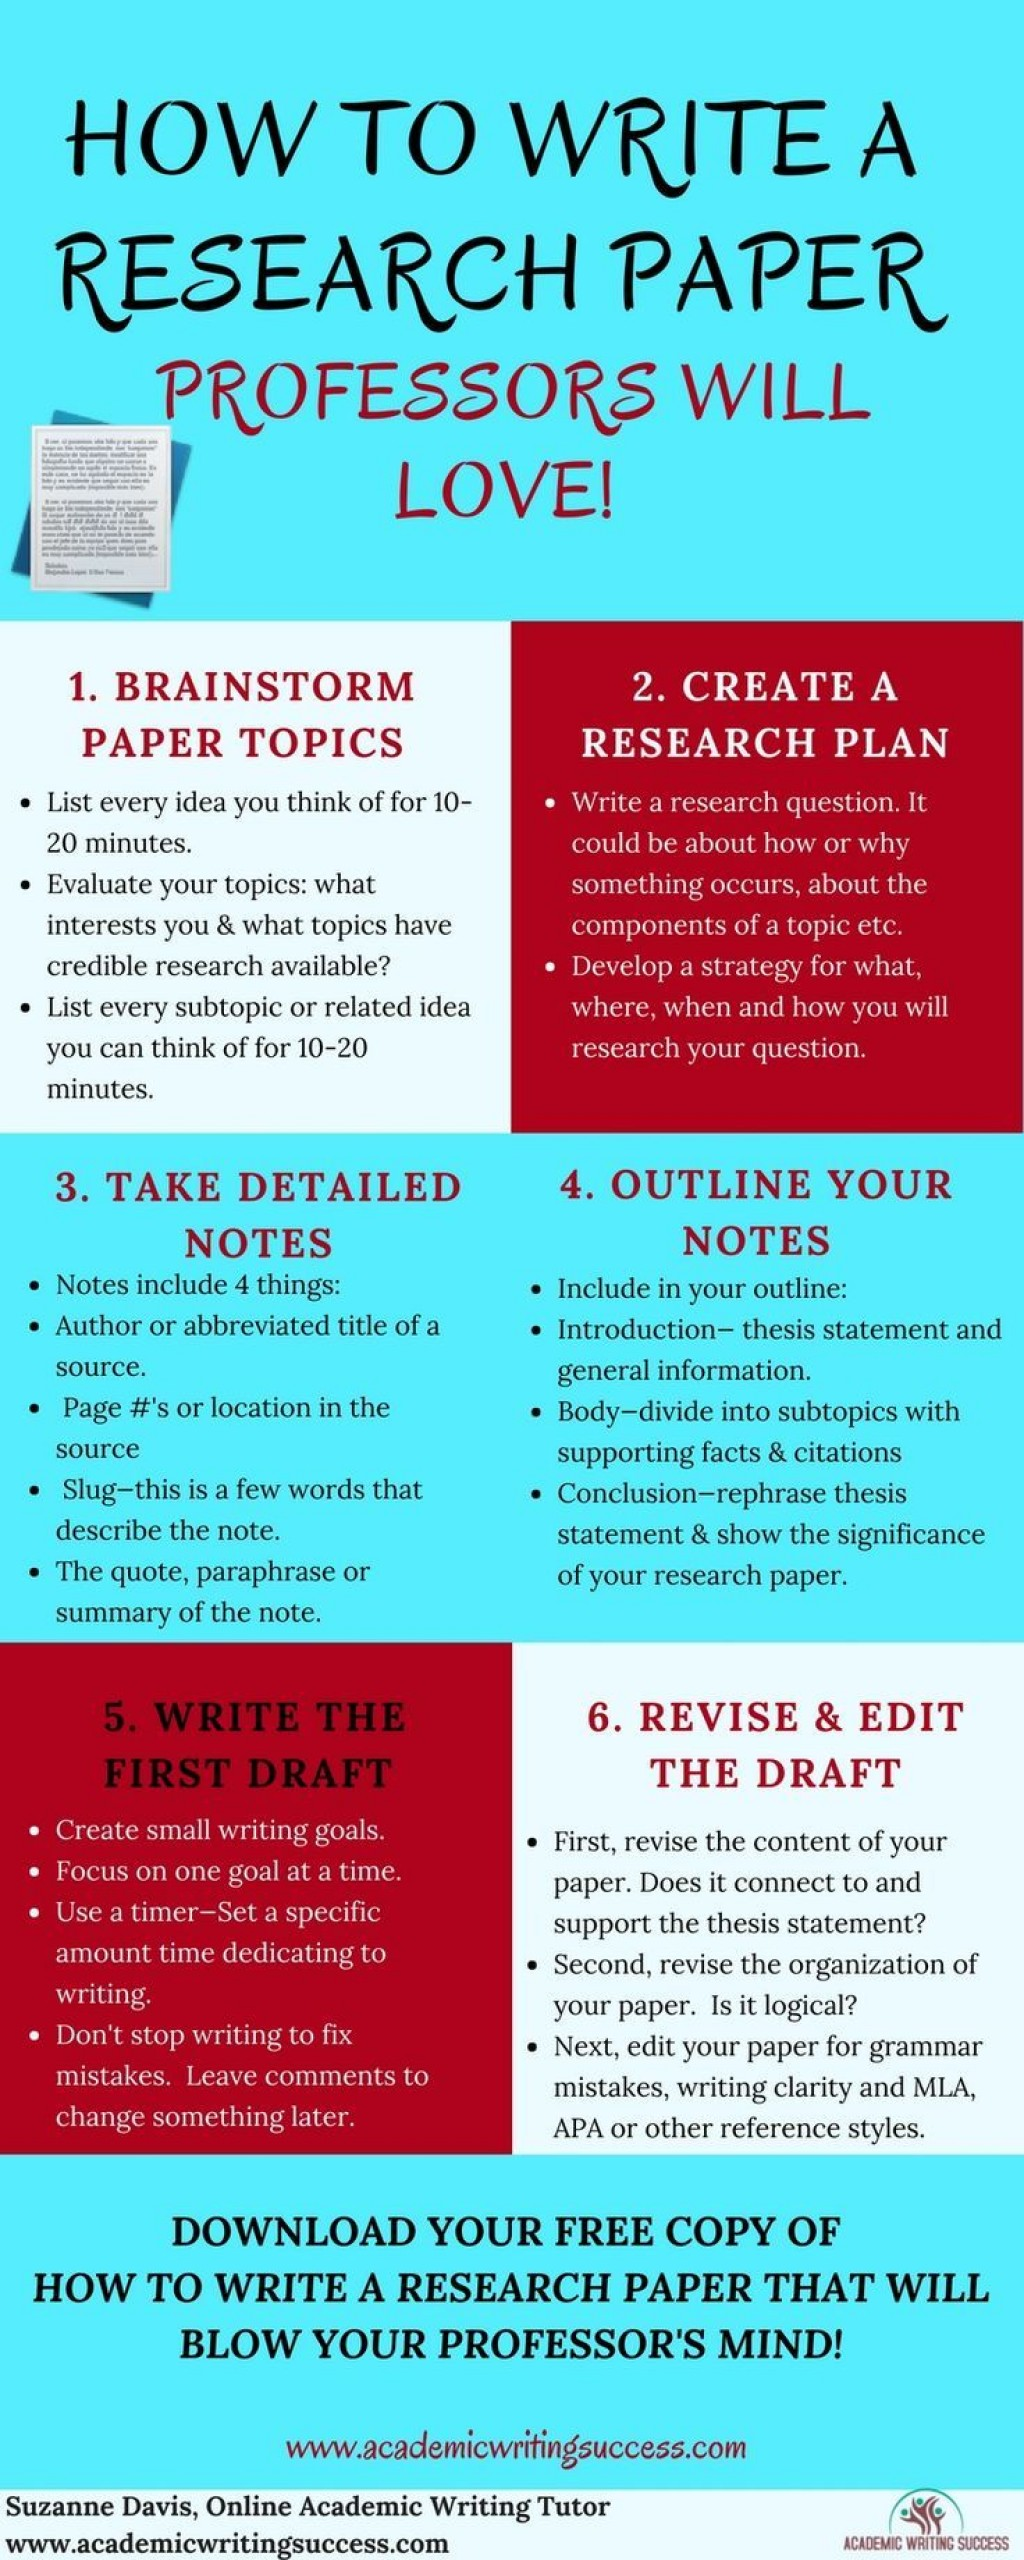 007 Research Paper Steps To Writing Fearsome A College Introduction High School Large